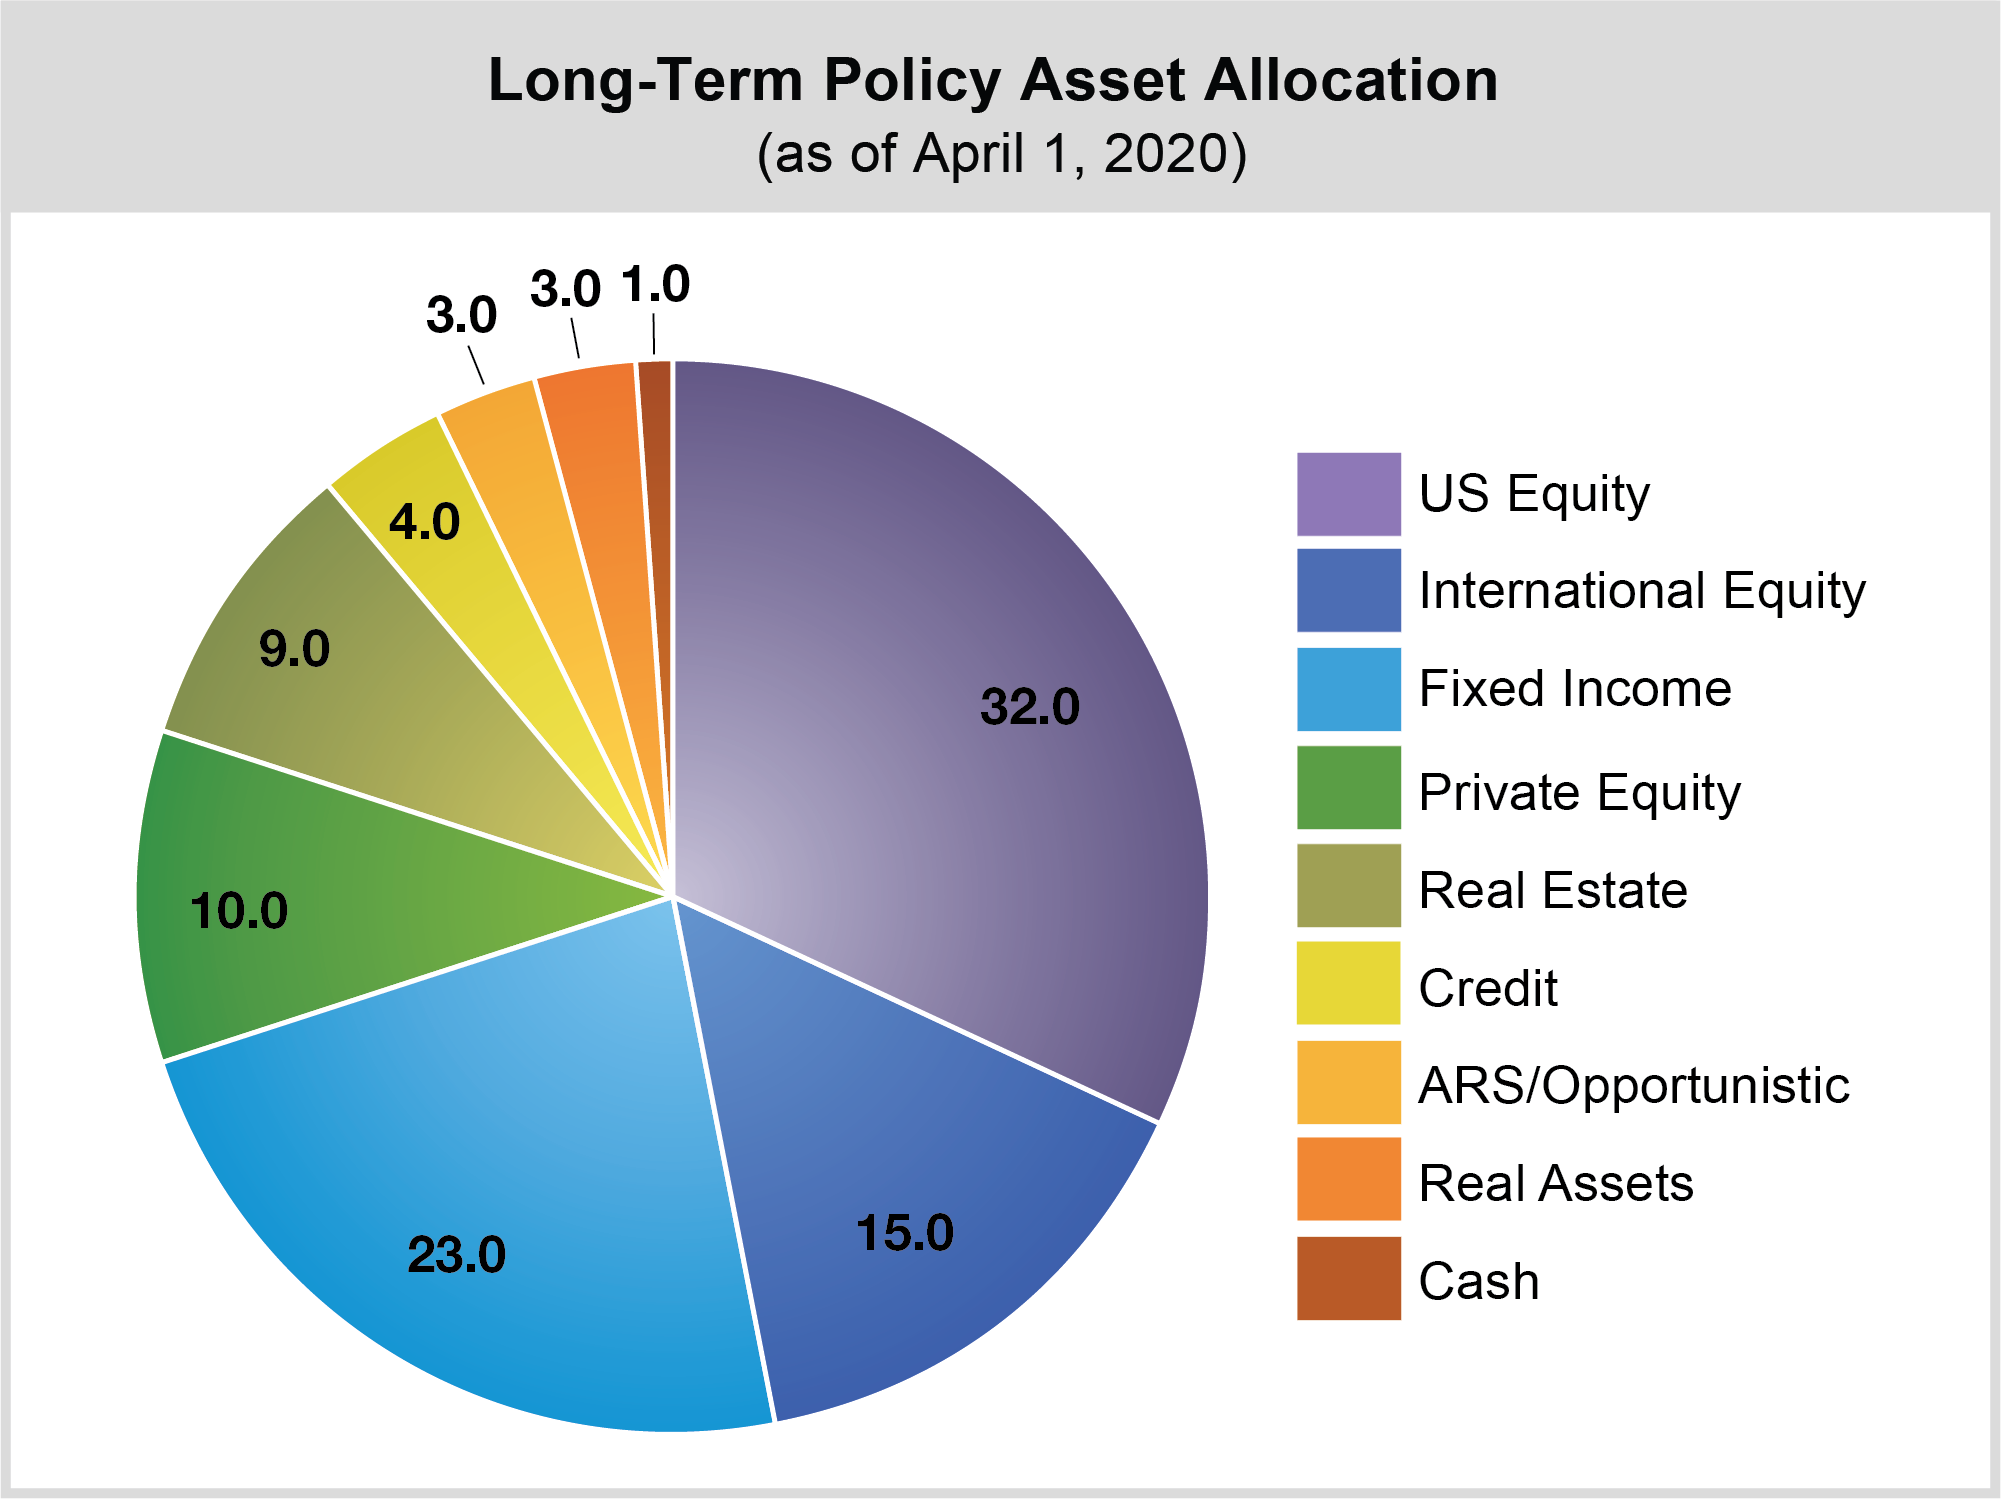 Pie chart representing the percentage breakdown of asset classes